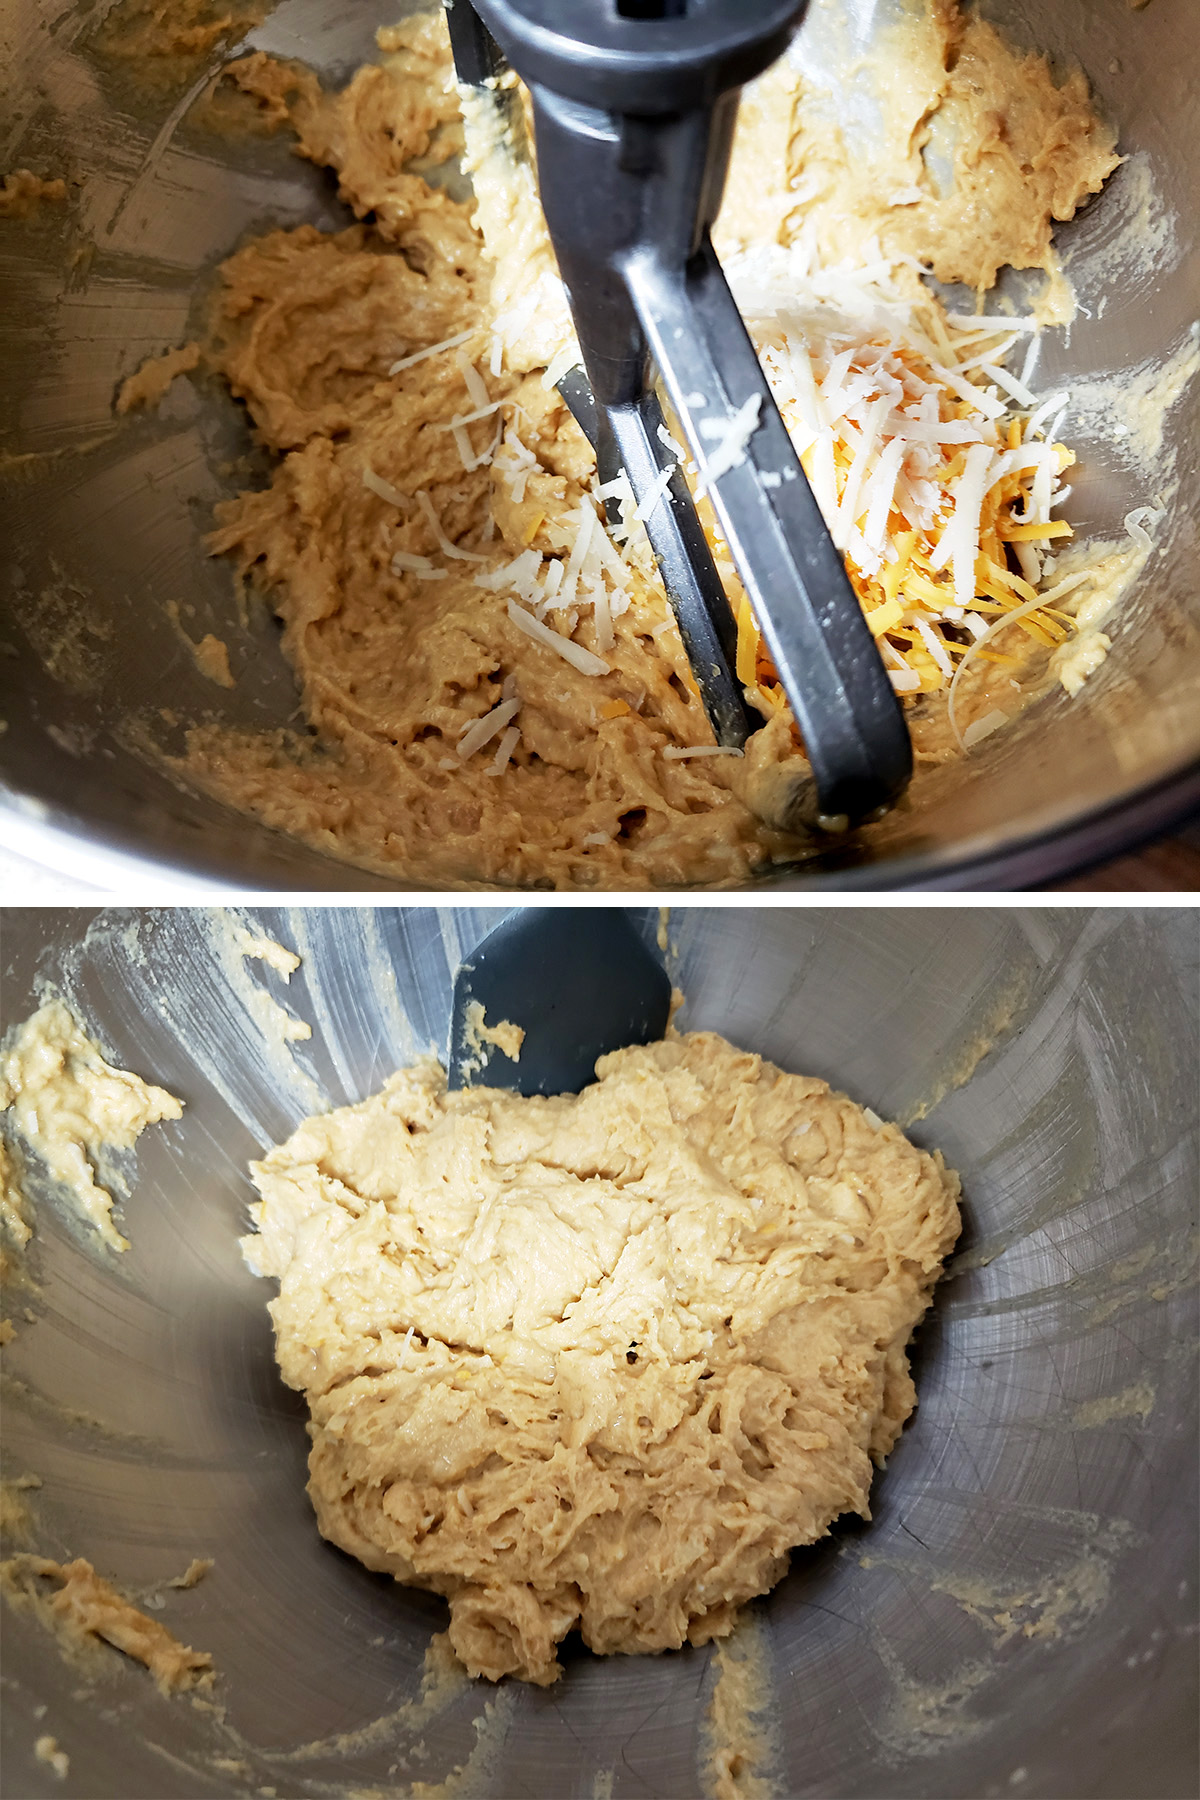 A two part compilation image showing cheese being added to the dough and mixed in.